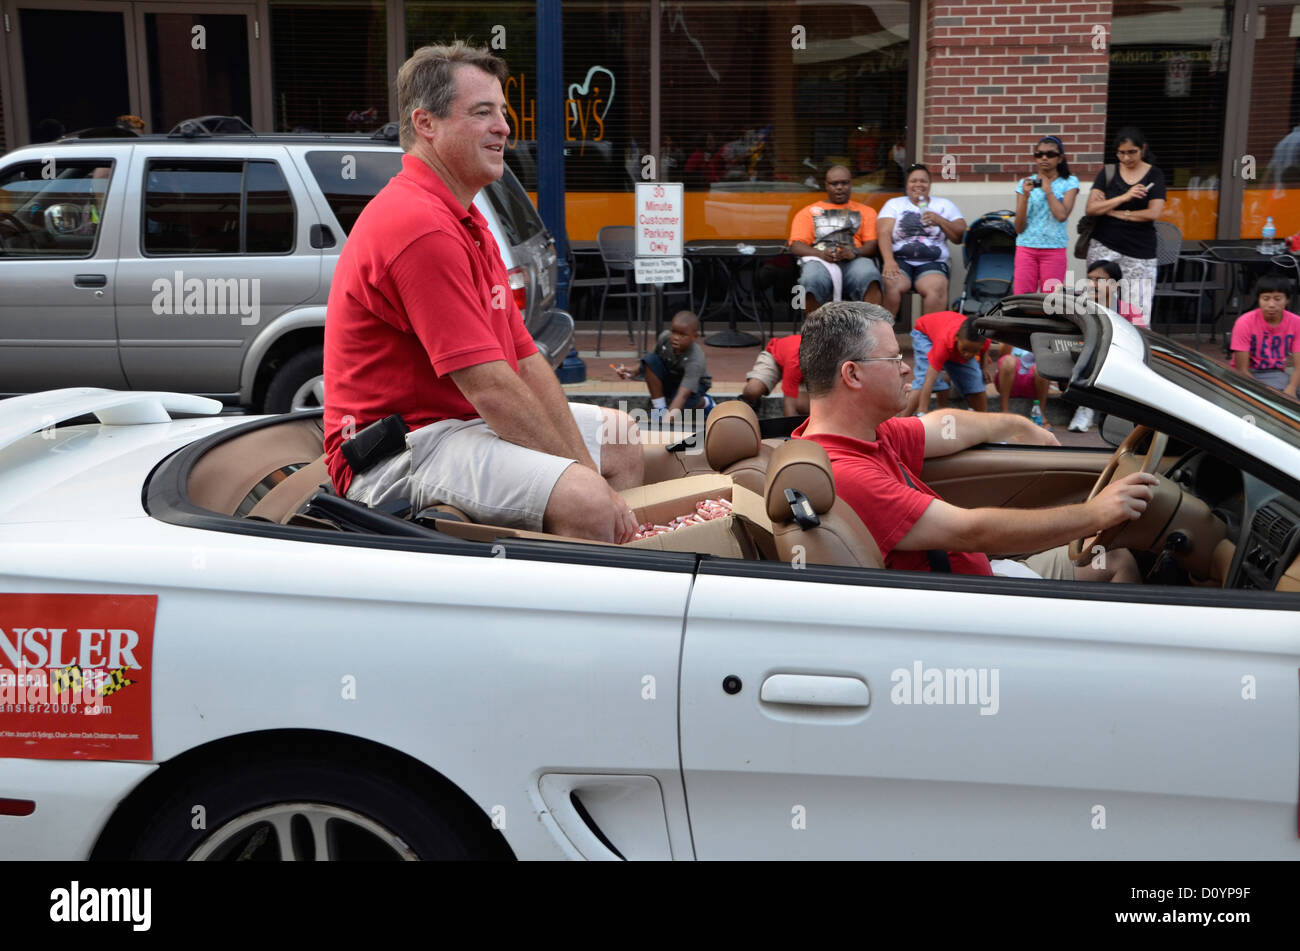 Doug Gansler Maryland attorney general and , Md governor candidate in parade - Stock Image